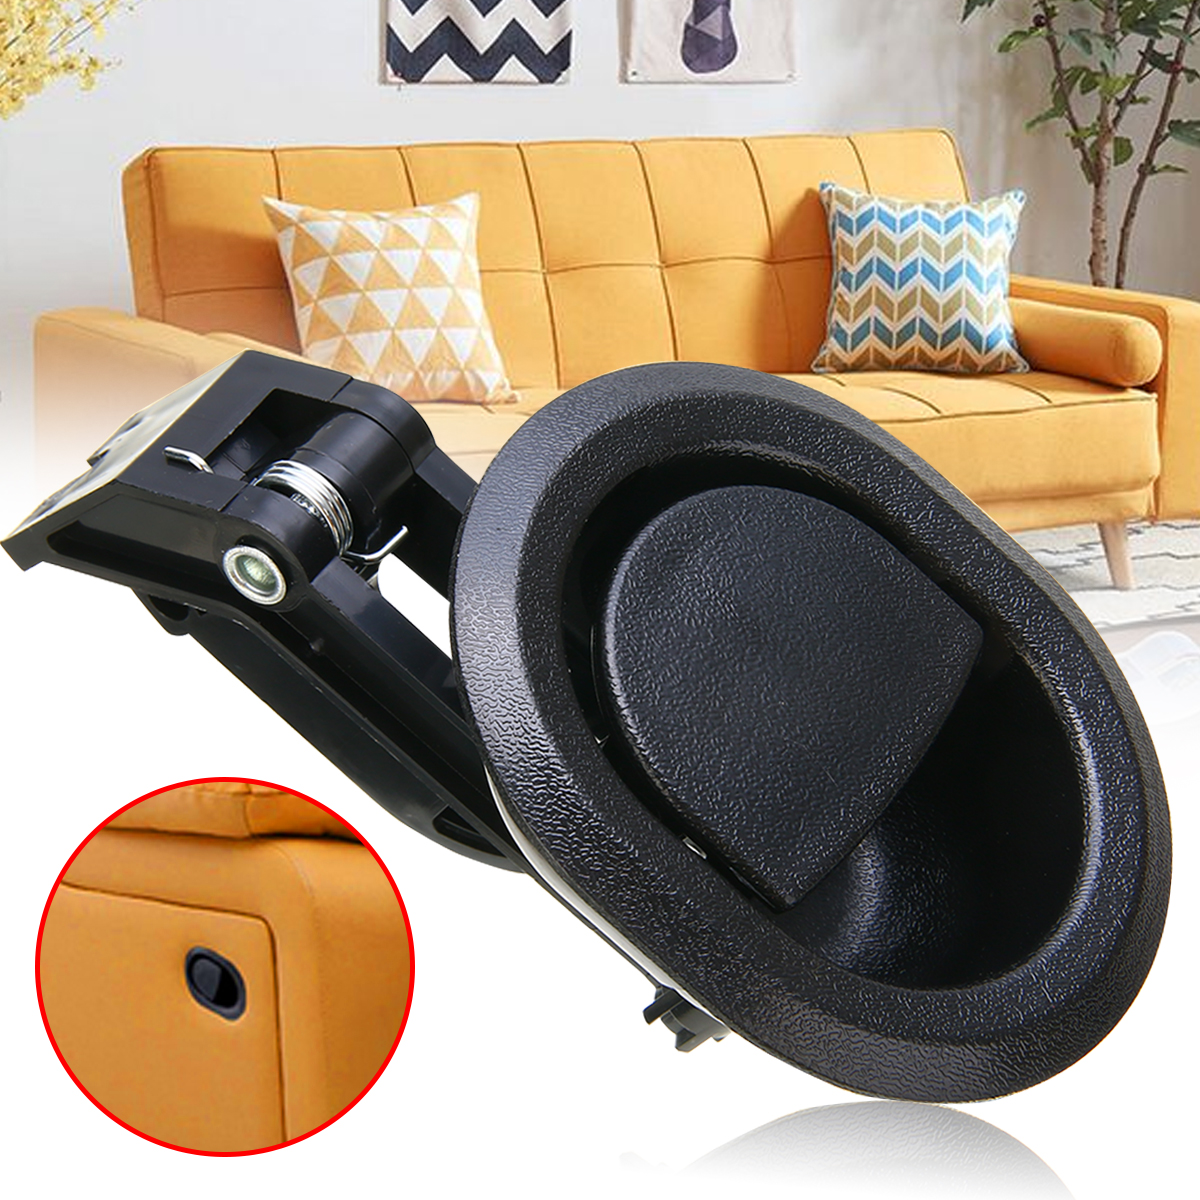 1pc Hard Plastic Release Lever Handle Black Cabinet Pulls Replacement Sofa Recliner Release Pull Handle For Oval Recliner Chair 2 pcs set durable metal handle recliner chair sofa couch release lever replacement pull handle part black suite recliner